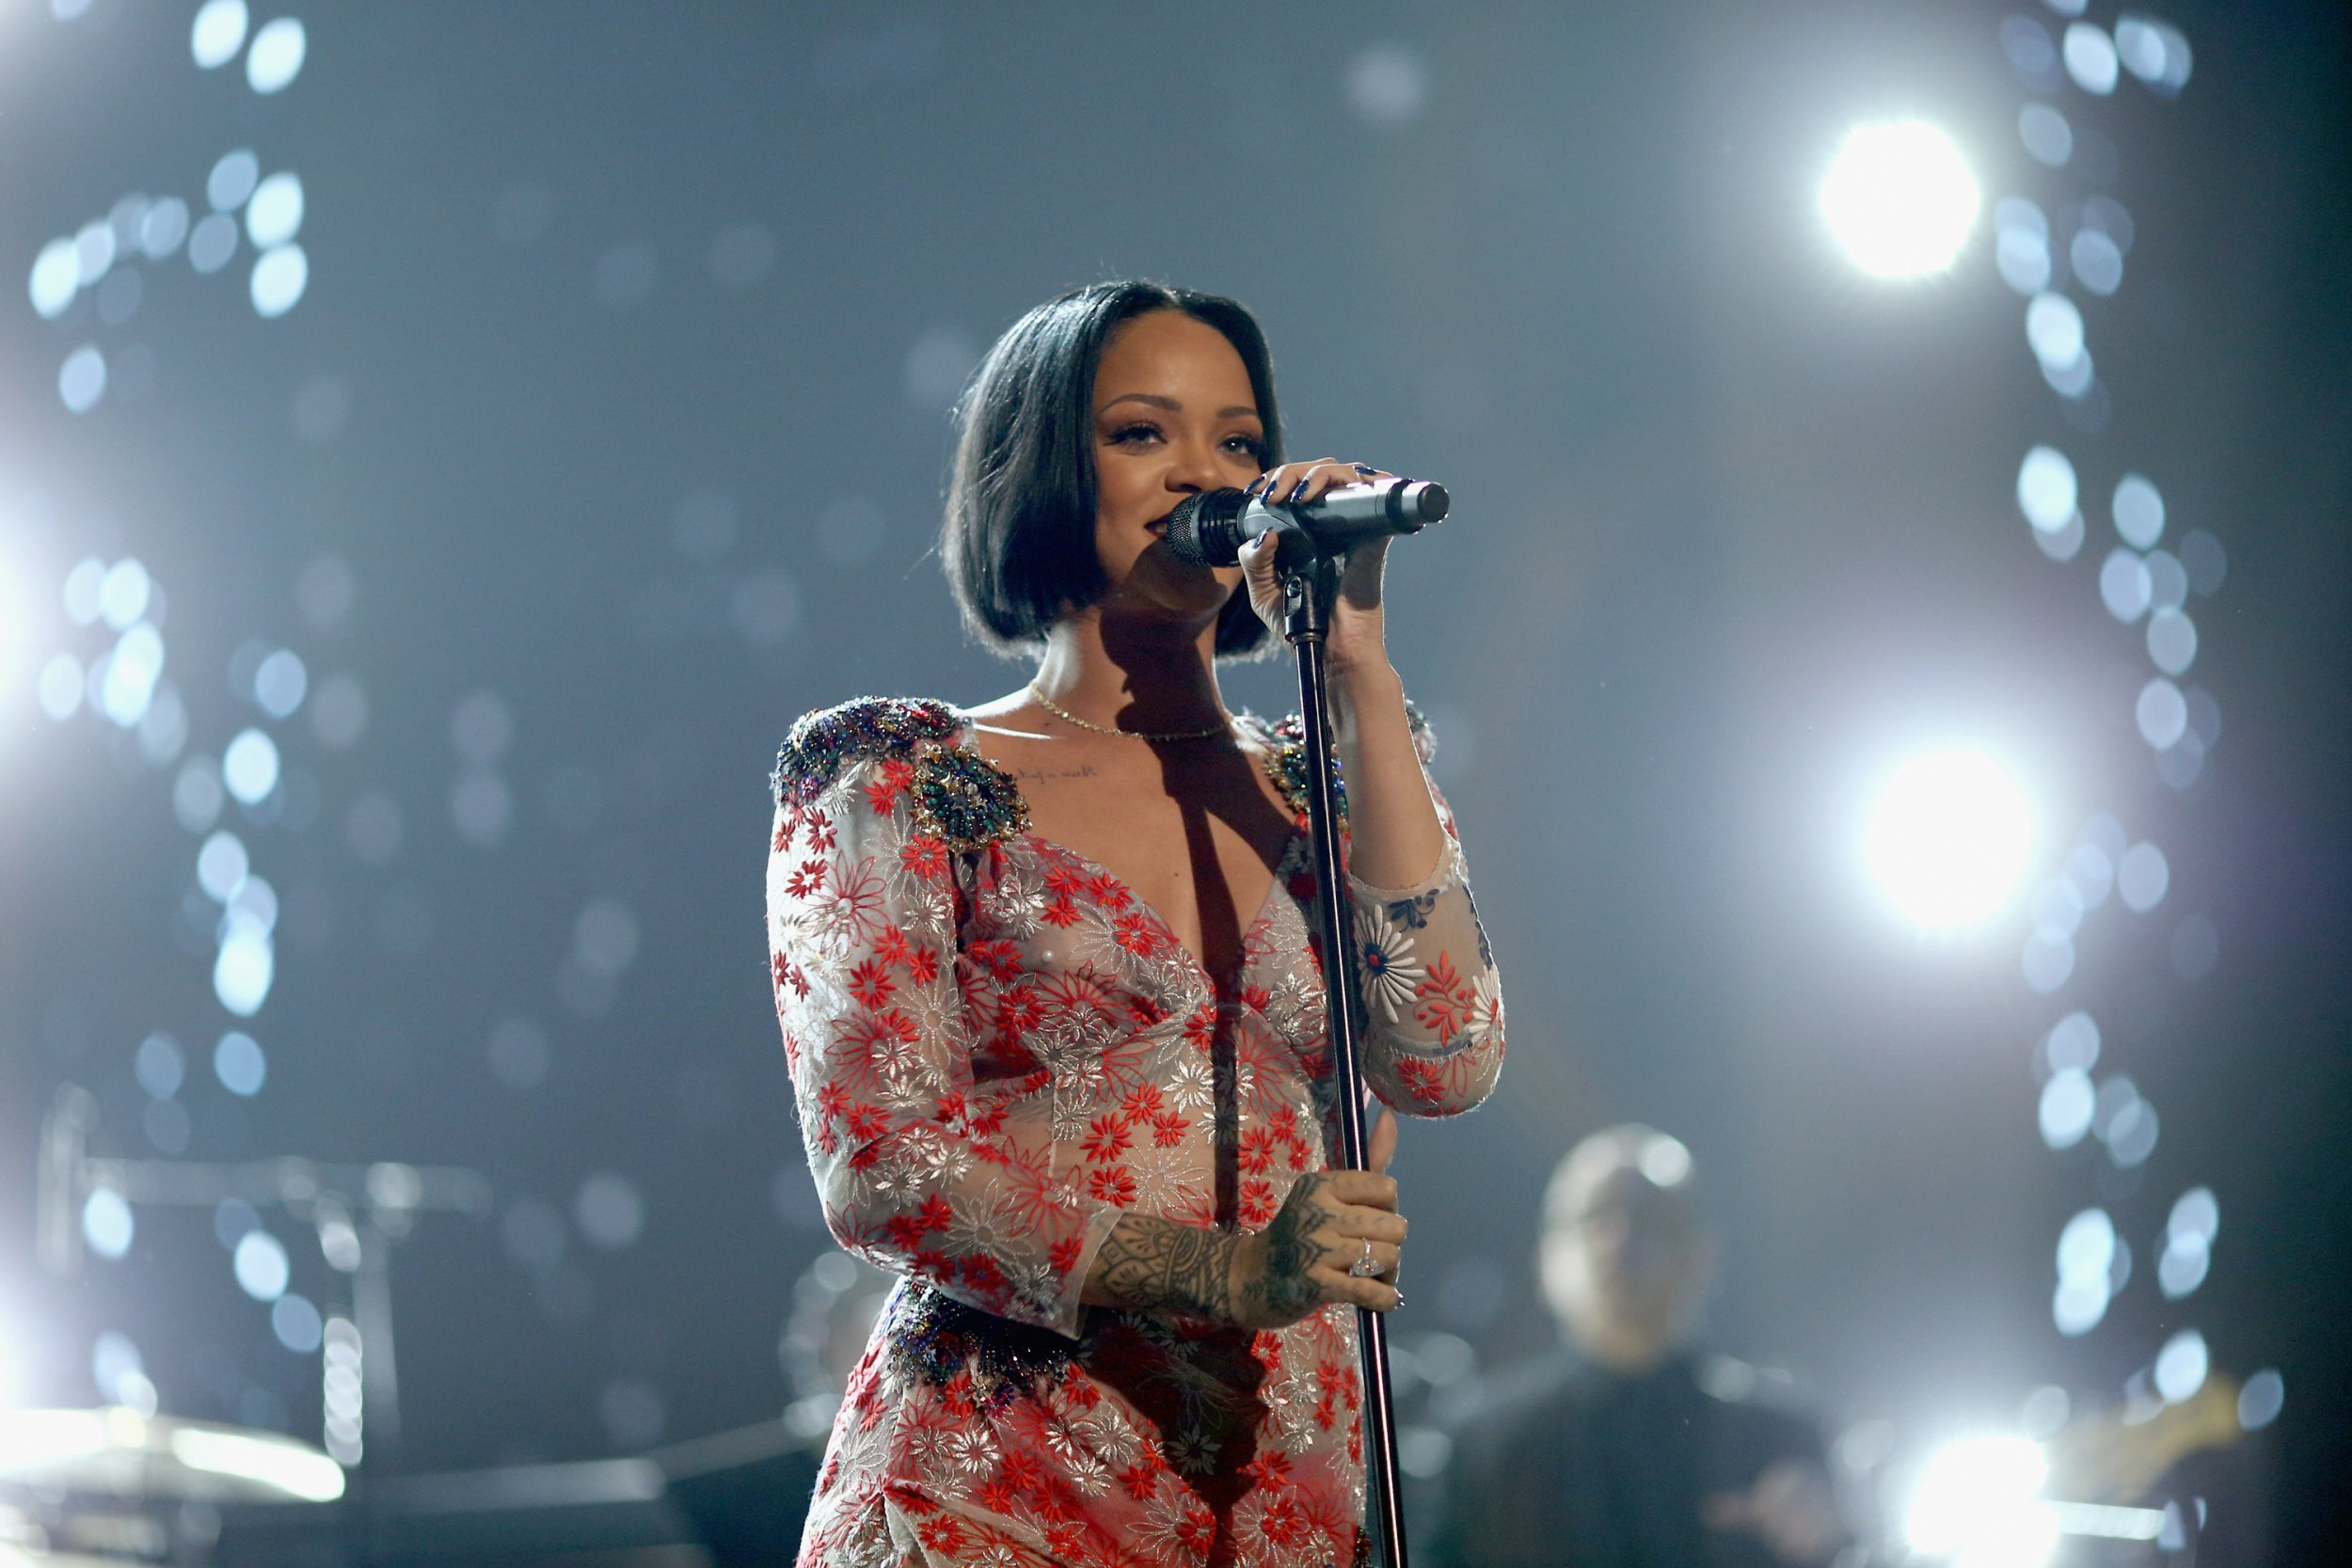 Rihanna performs at MusiCares